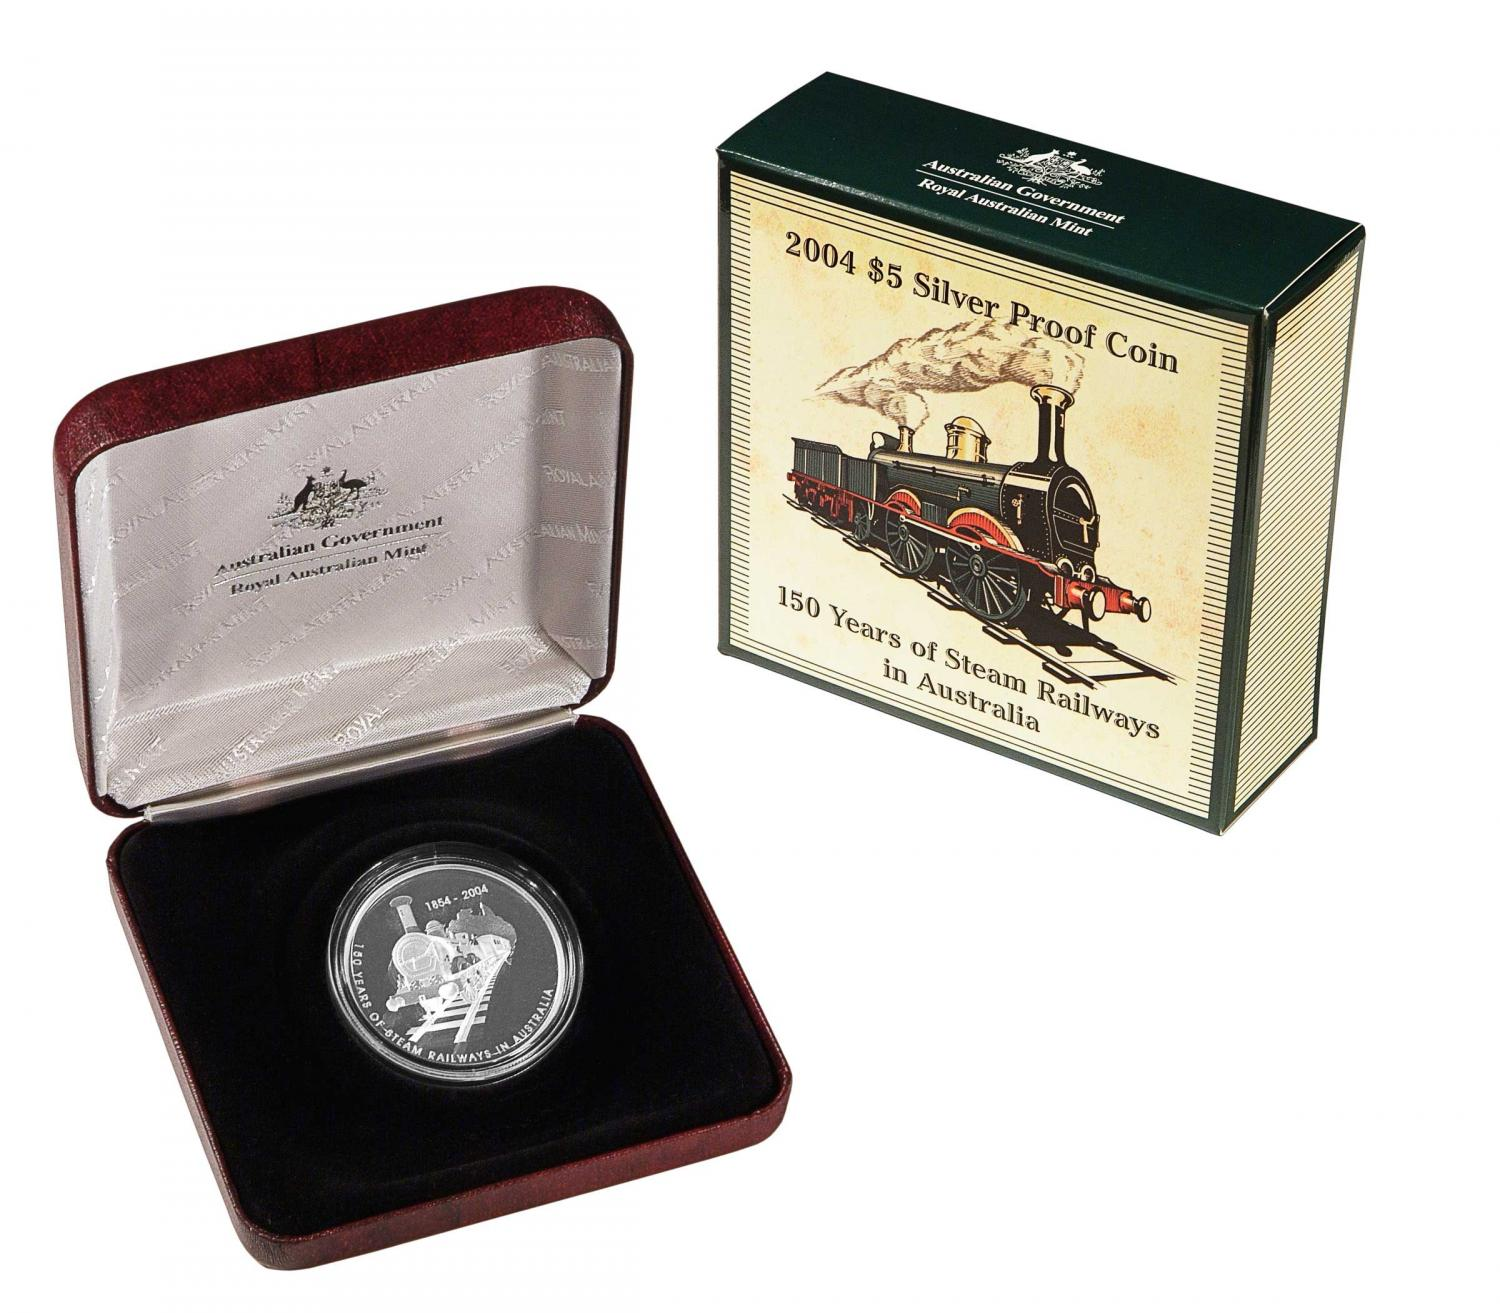 Thumbnail for 2004 Five Dollar Silver Proof Coin - 150 Years of Steam Railway In Australia